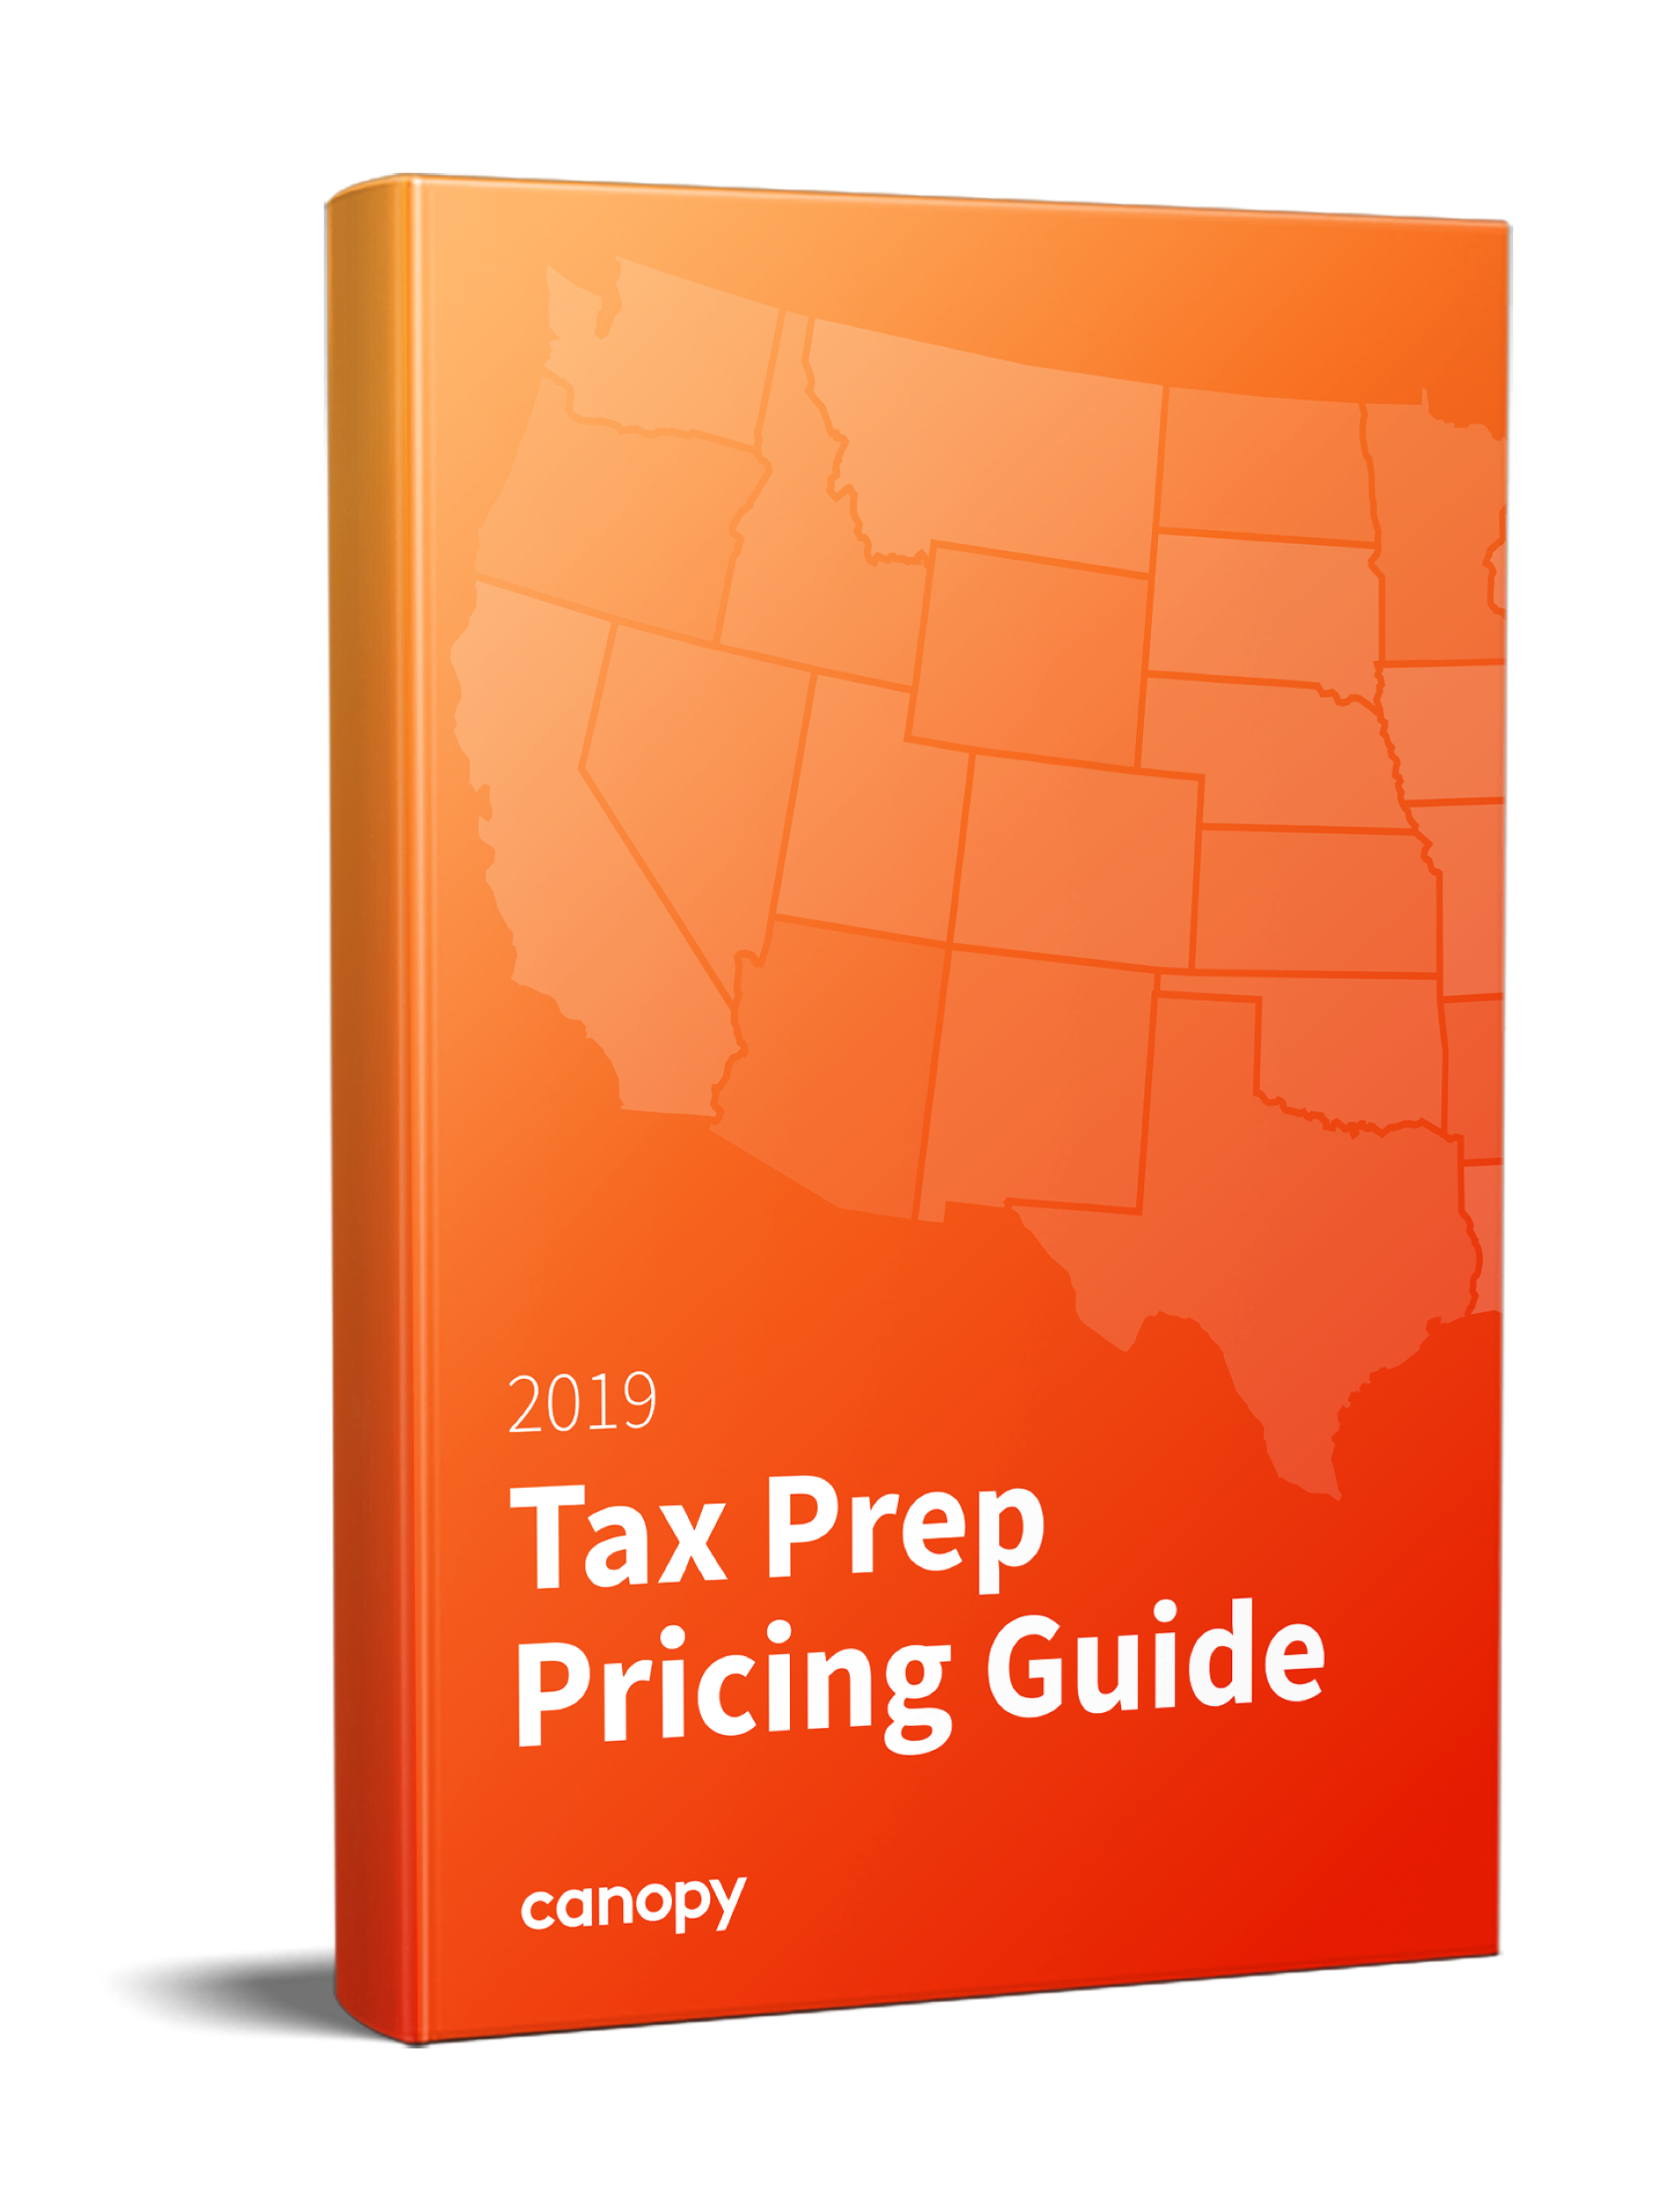 Tax Prep Pricing Guide 2019 Large image